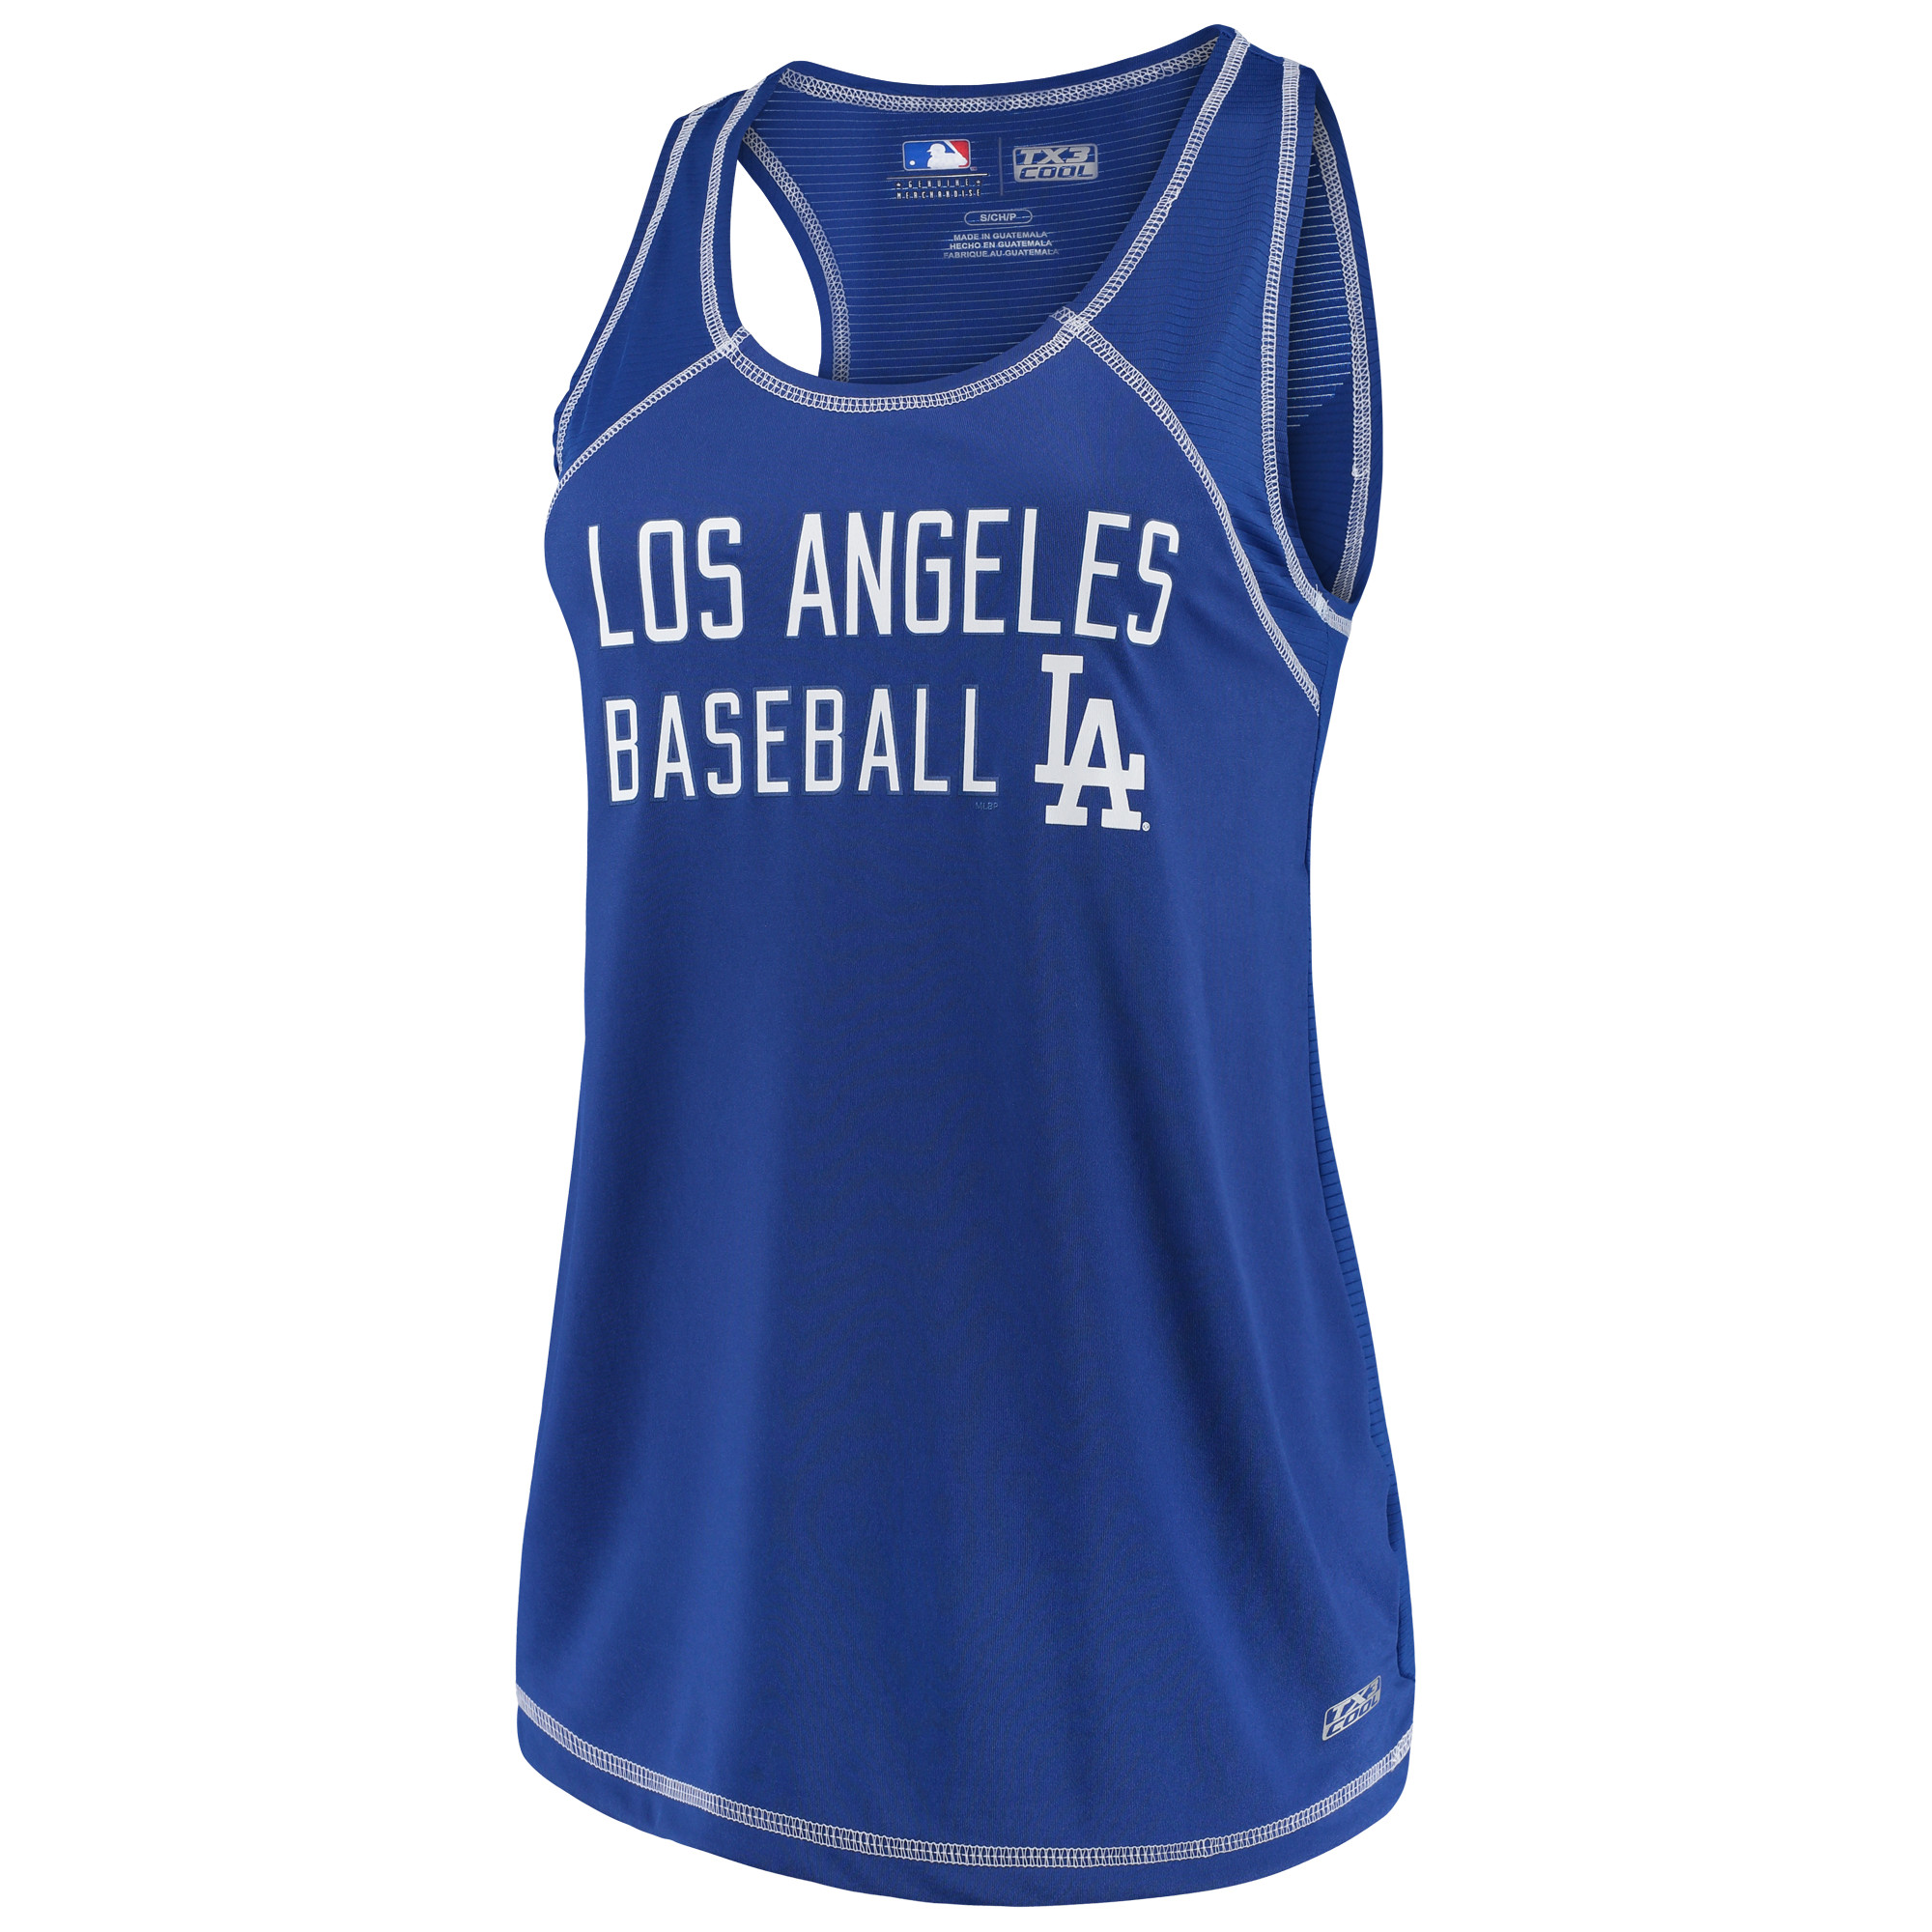 Women's Majestic Royal Los Angeles Dodgers TX3 Cool Fabric Scoop Neck Tank Top